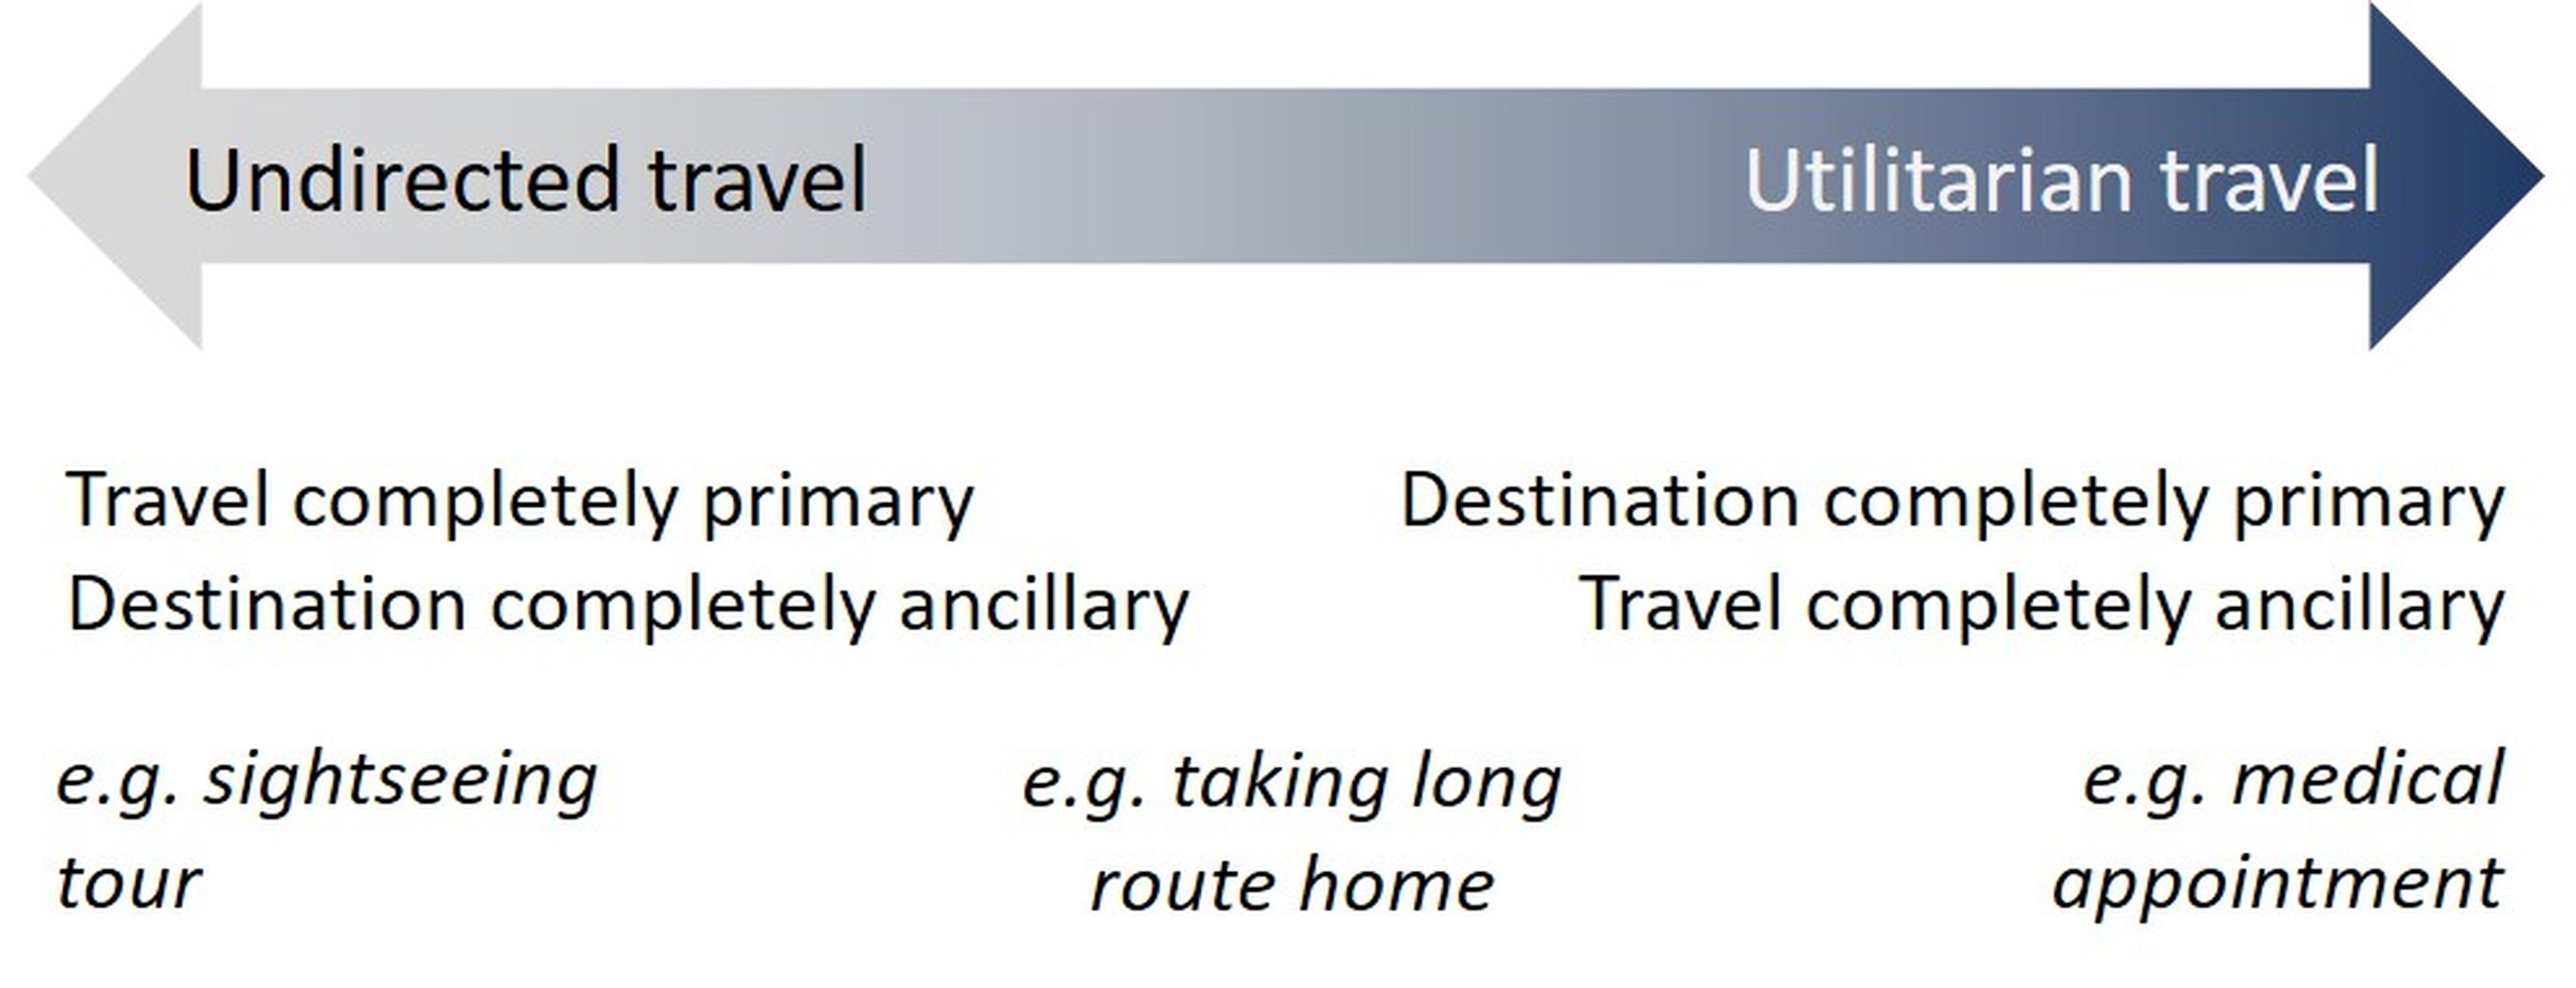 A continuum between utilitarian and 'undirected' travel (modified from Mokhtarian & Salomon, 2001)